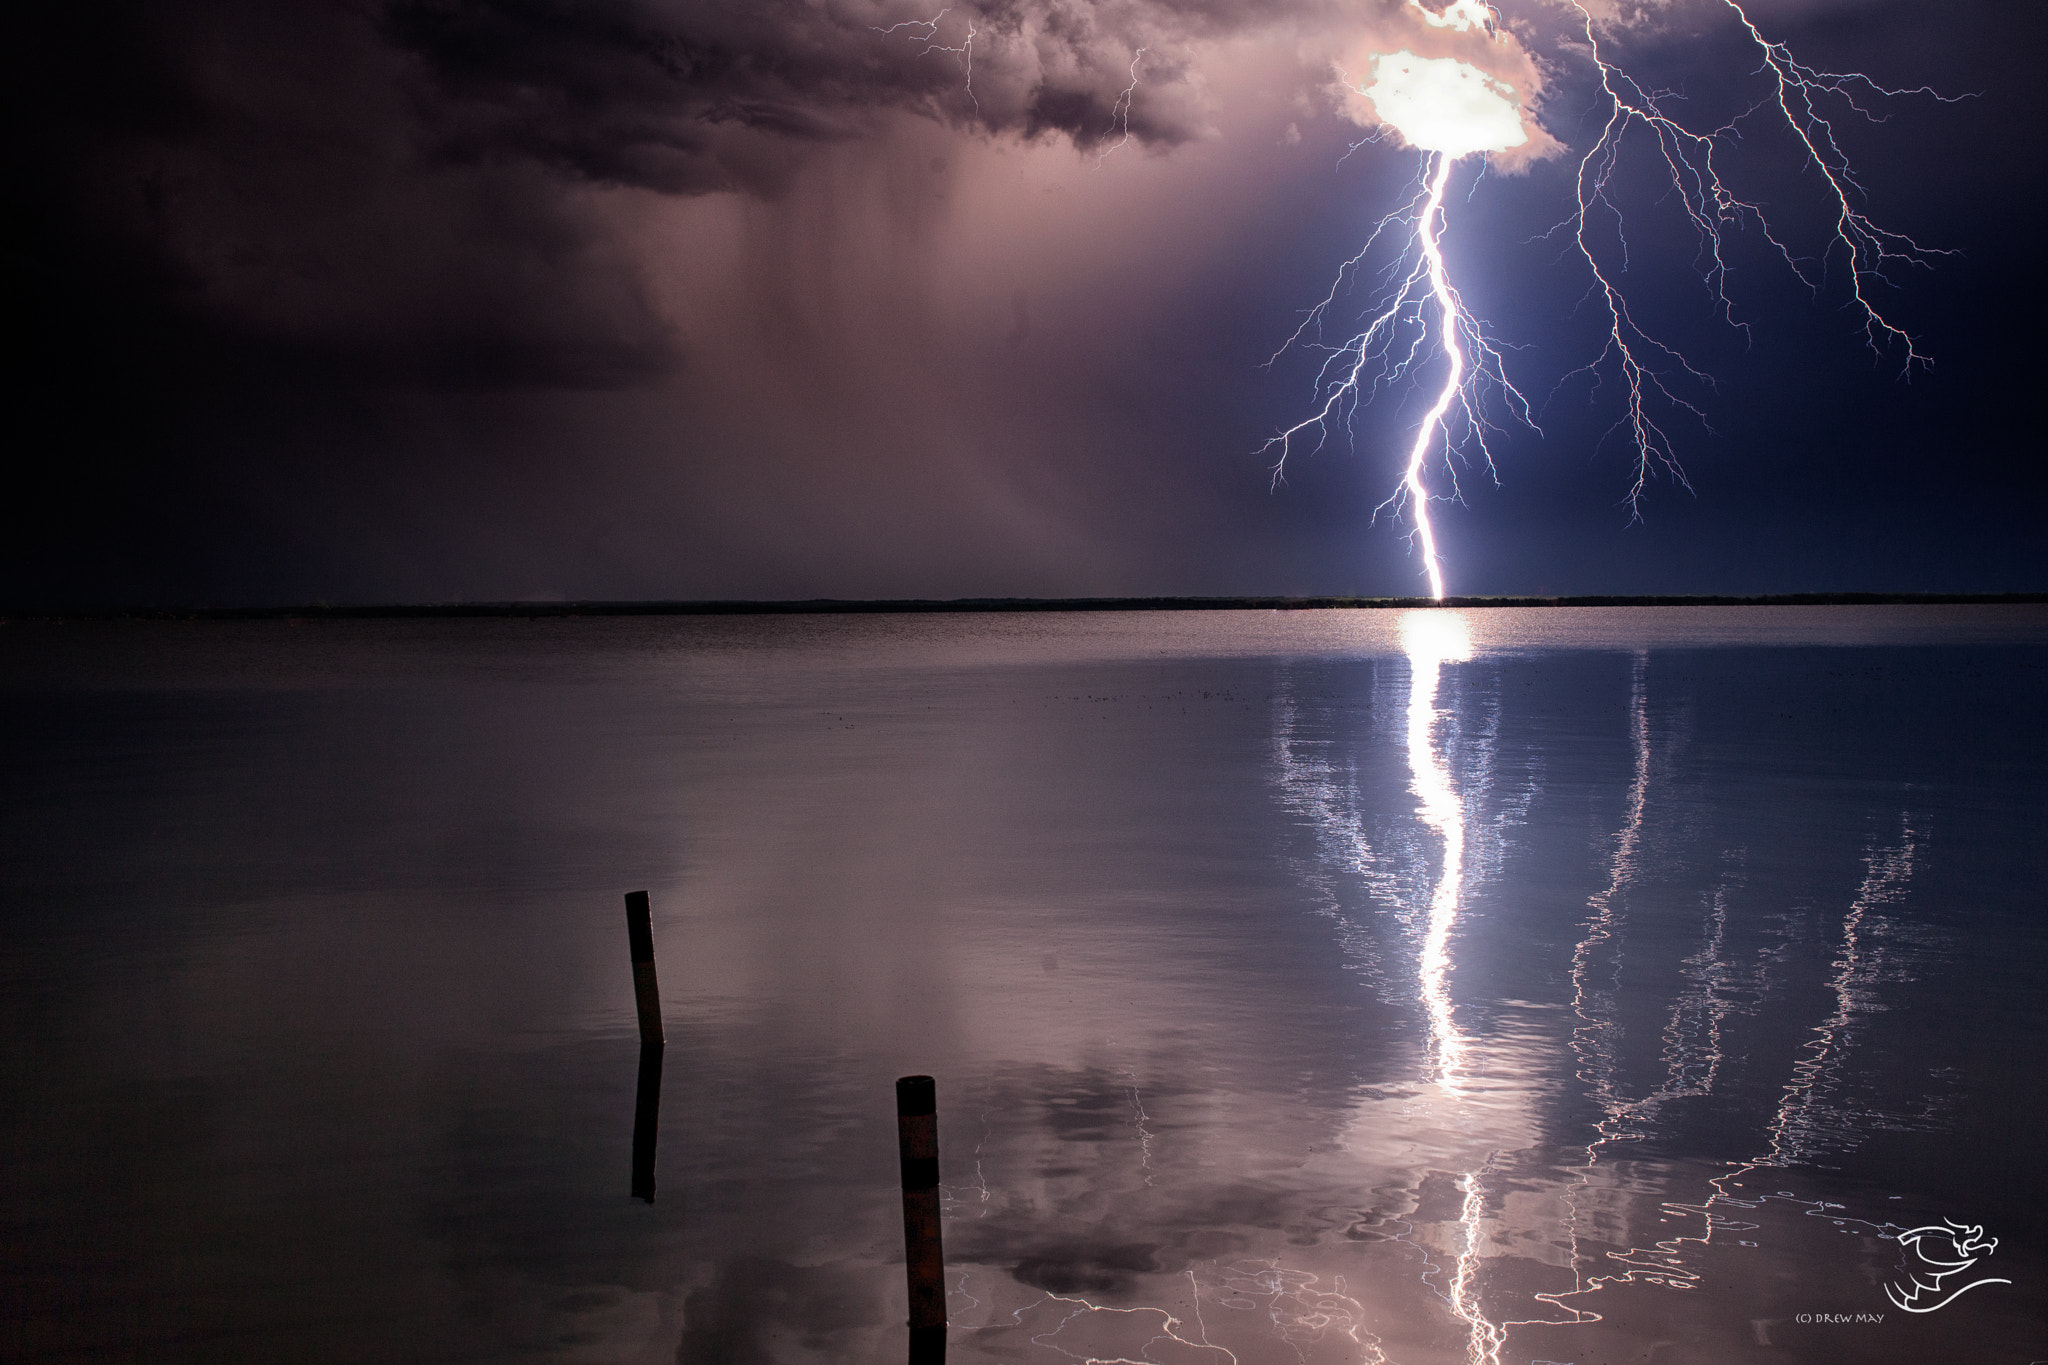 Photograph Light over Water by Drew May on 500px